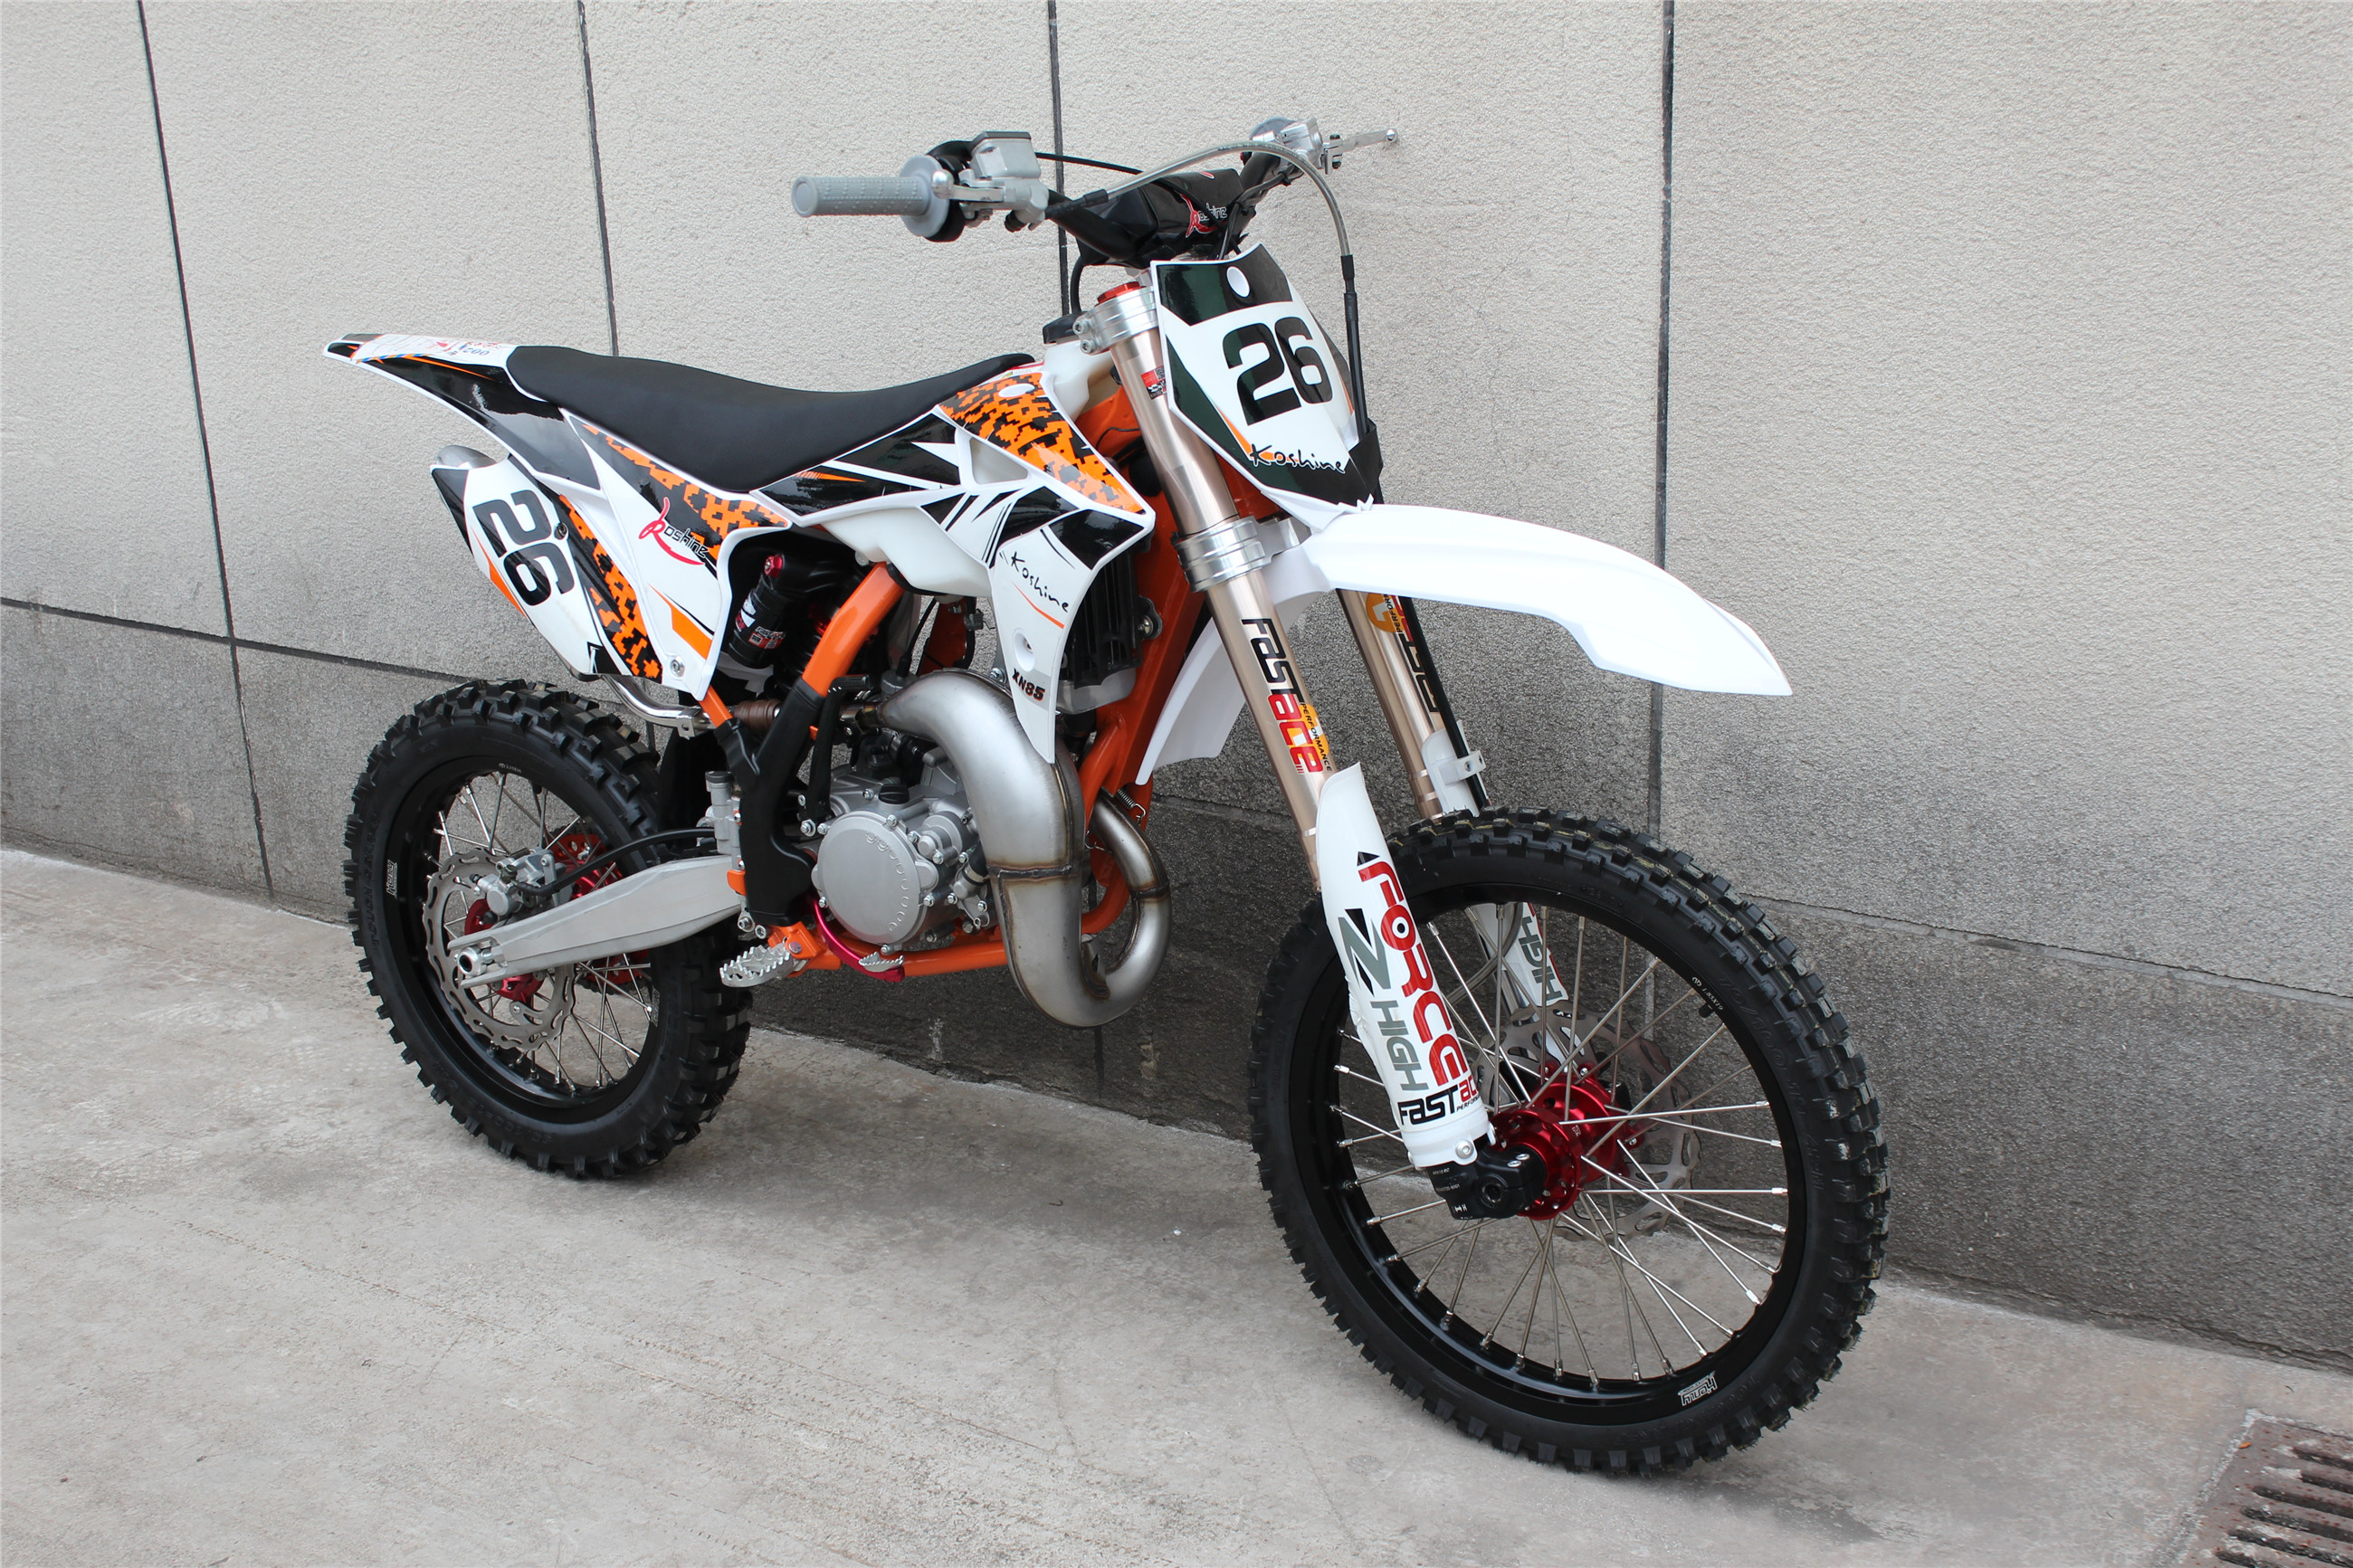 85CC dirt bike with Fastace forks XN85